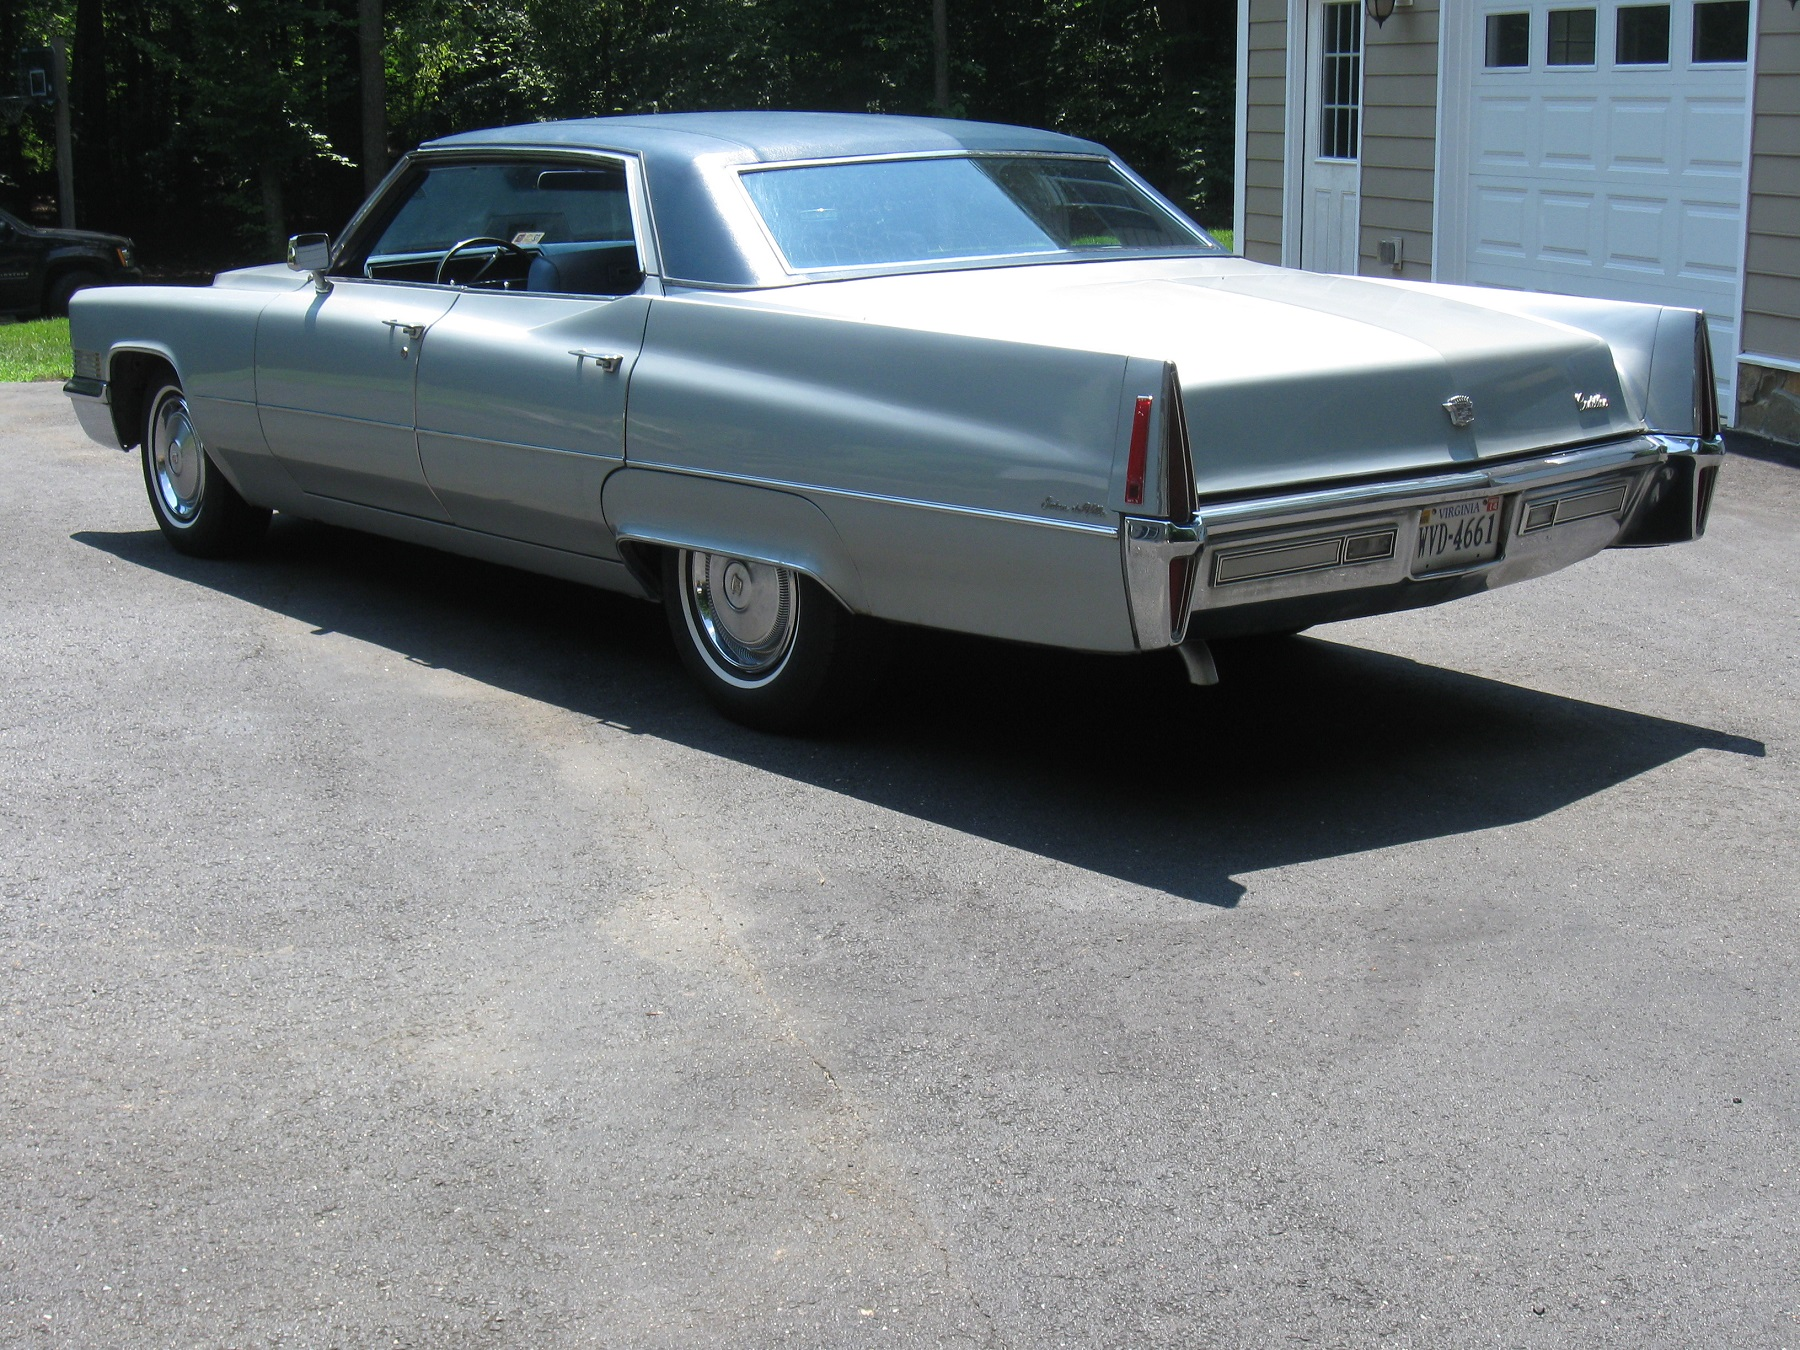 1970 Cadillac Sedan DeVille Acquired for Teen - Classic